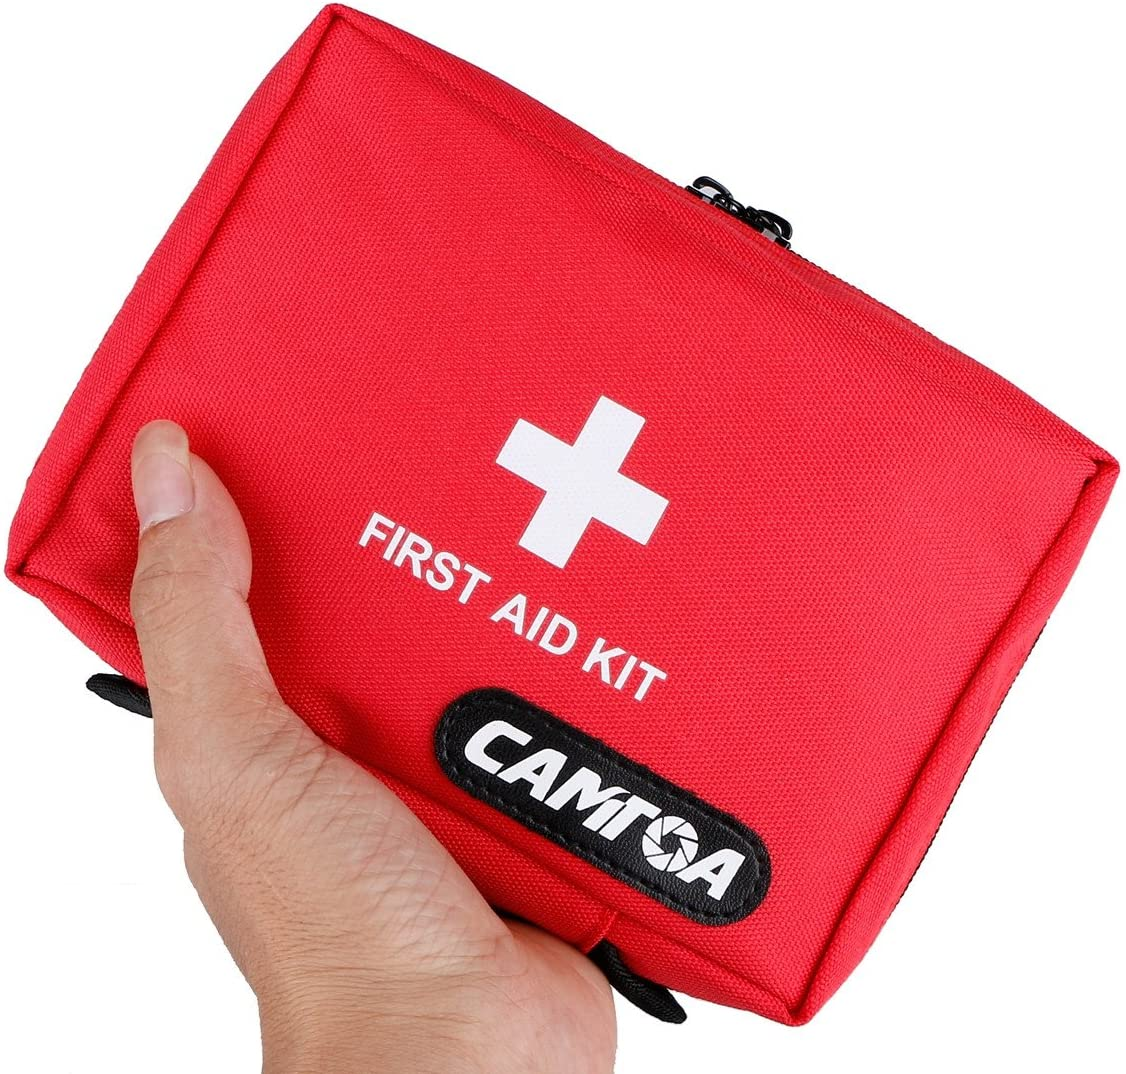 Day out essentials - first aid kit